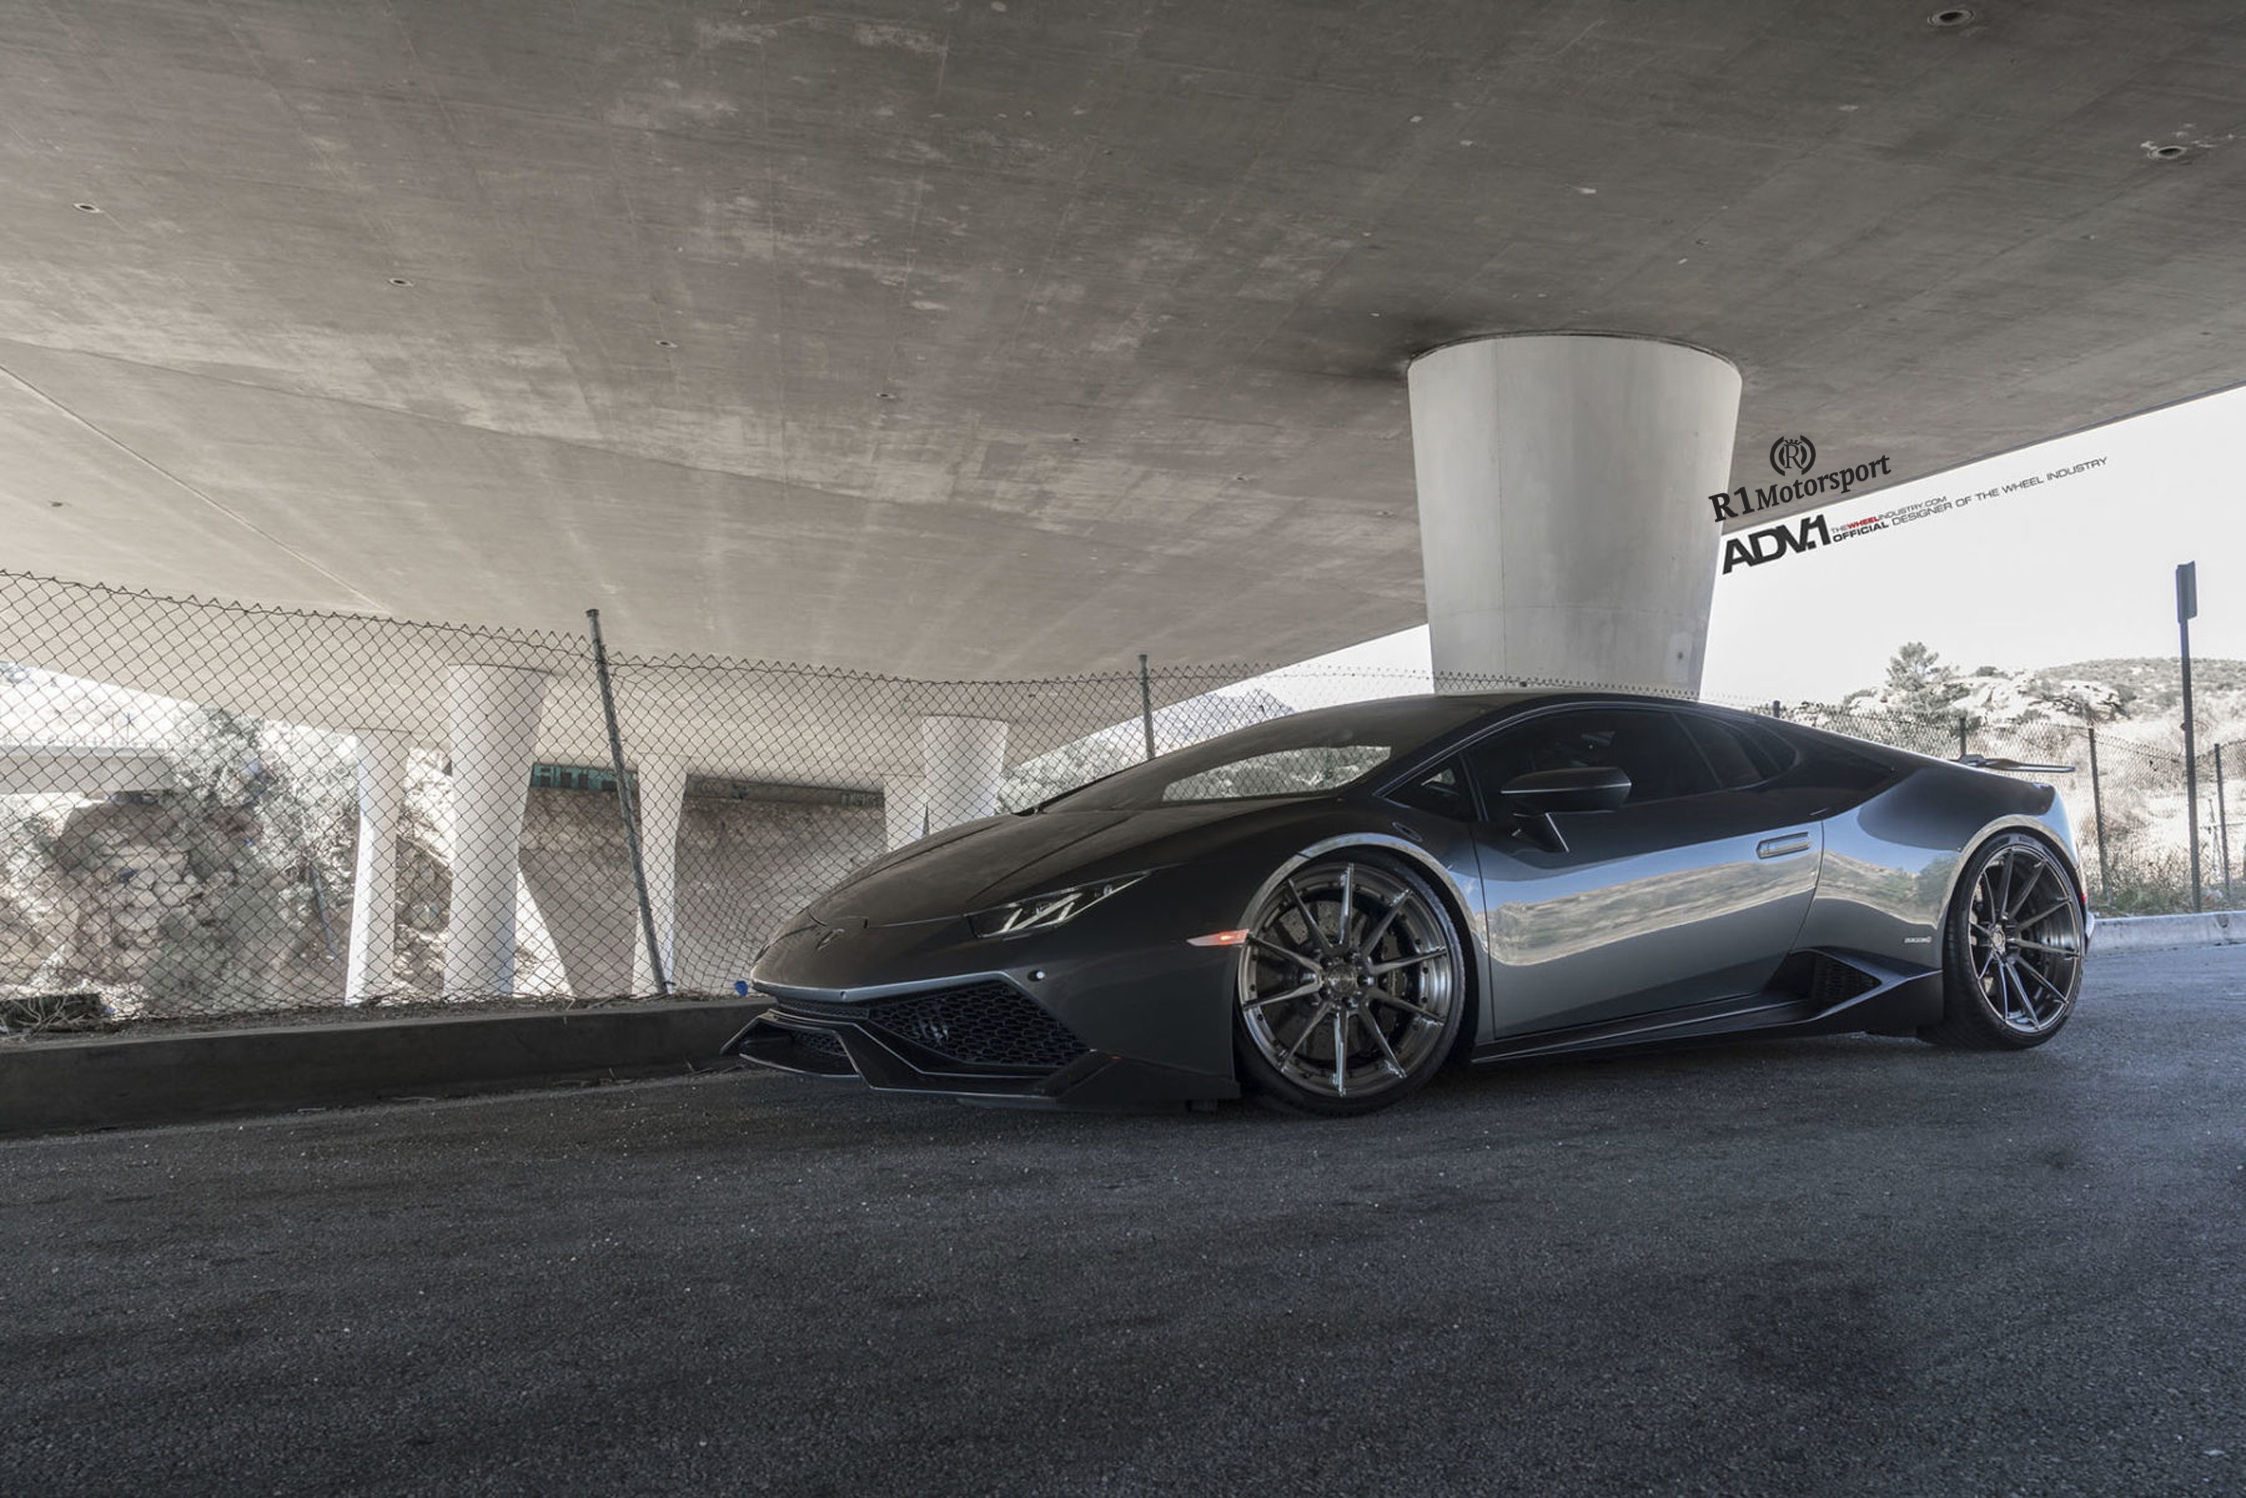 adv1-wheels-grigio-lynx-lamborghini-huracan-lp610-vorsteiner-wing-spoiler-custom-forged-racing-lowered-rims-e.jpg